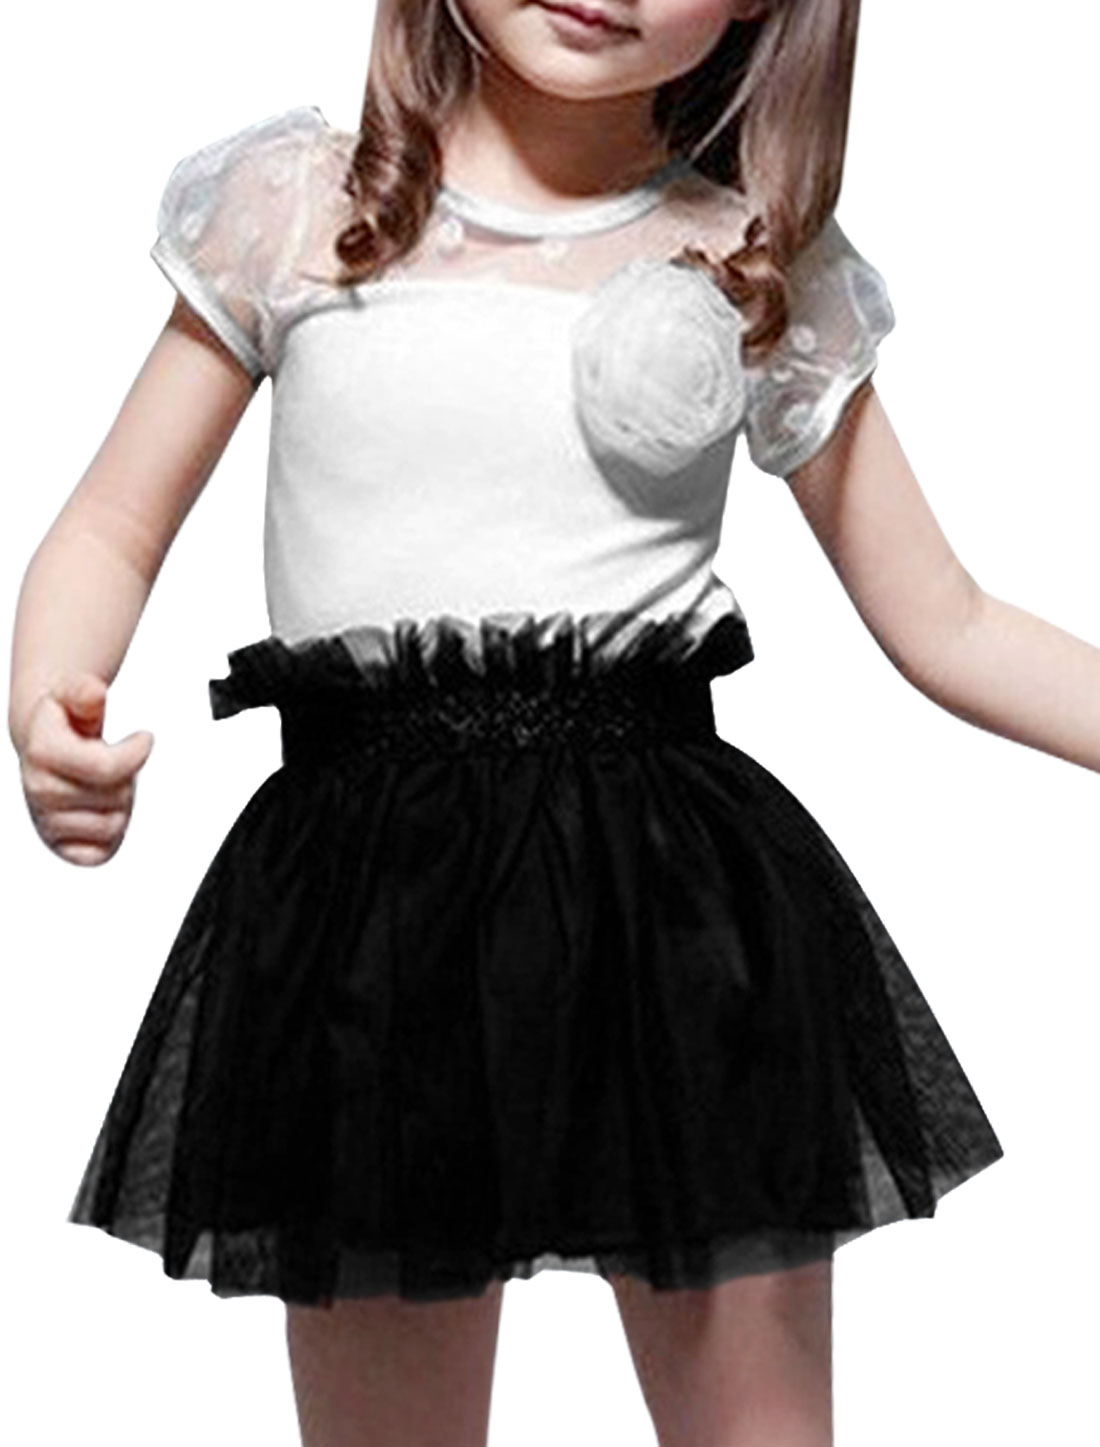 Girls Round Neck Color Block Elastic Waist Dress White Black 3T